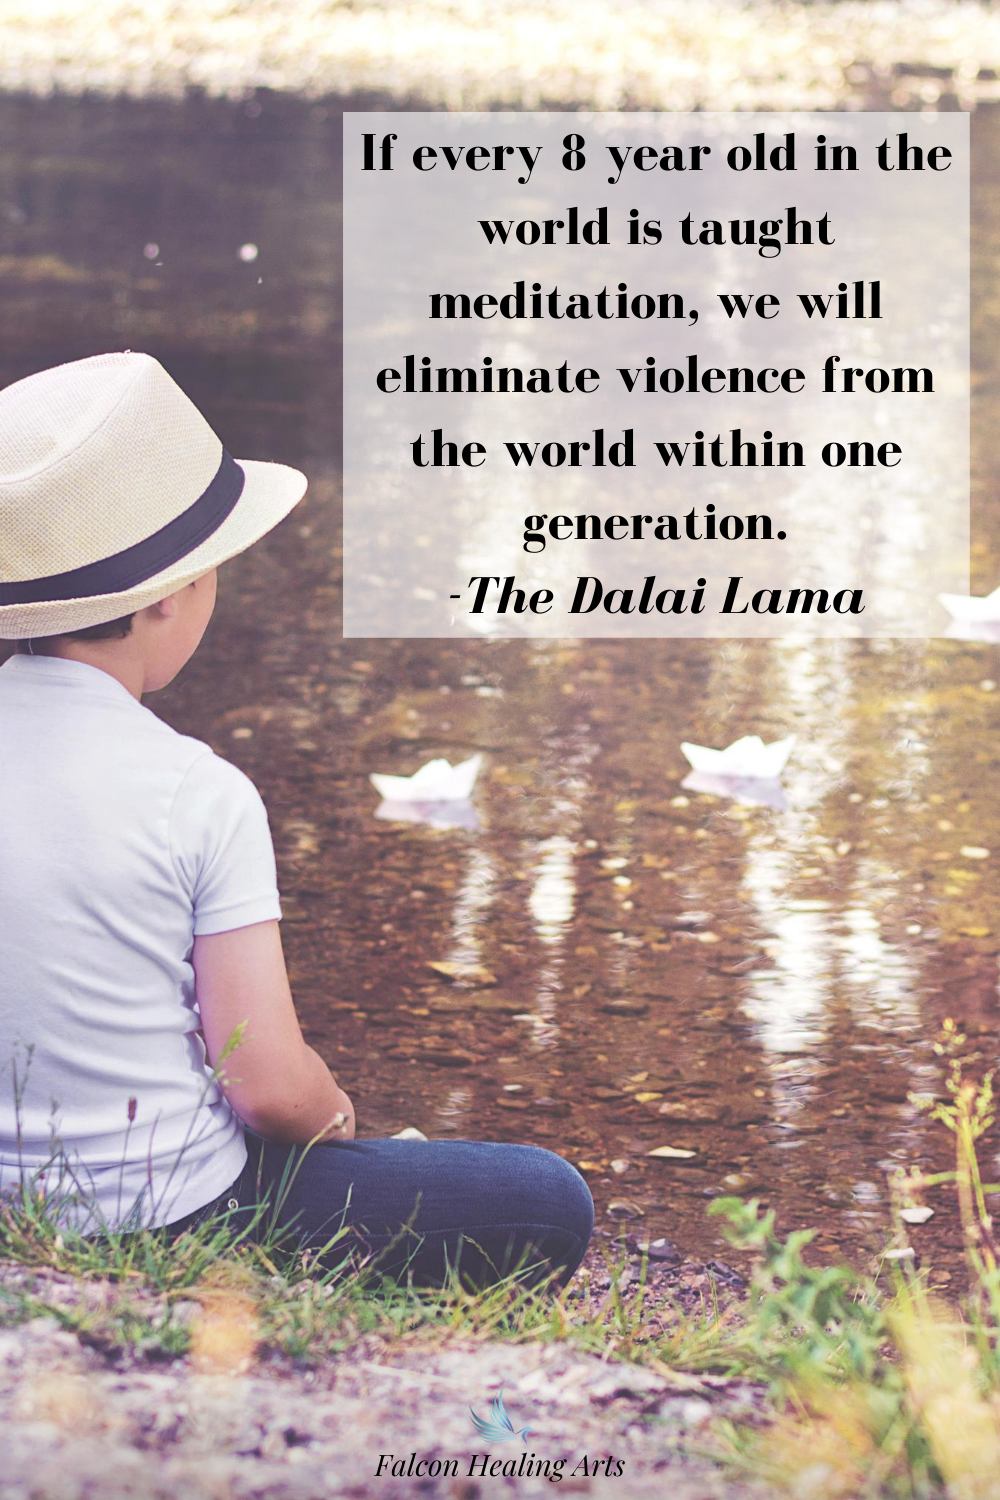 Dalai Lama meditation quote for kids to end world violence